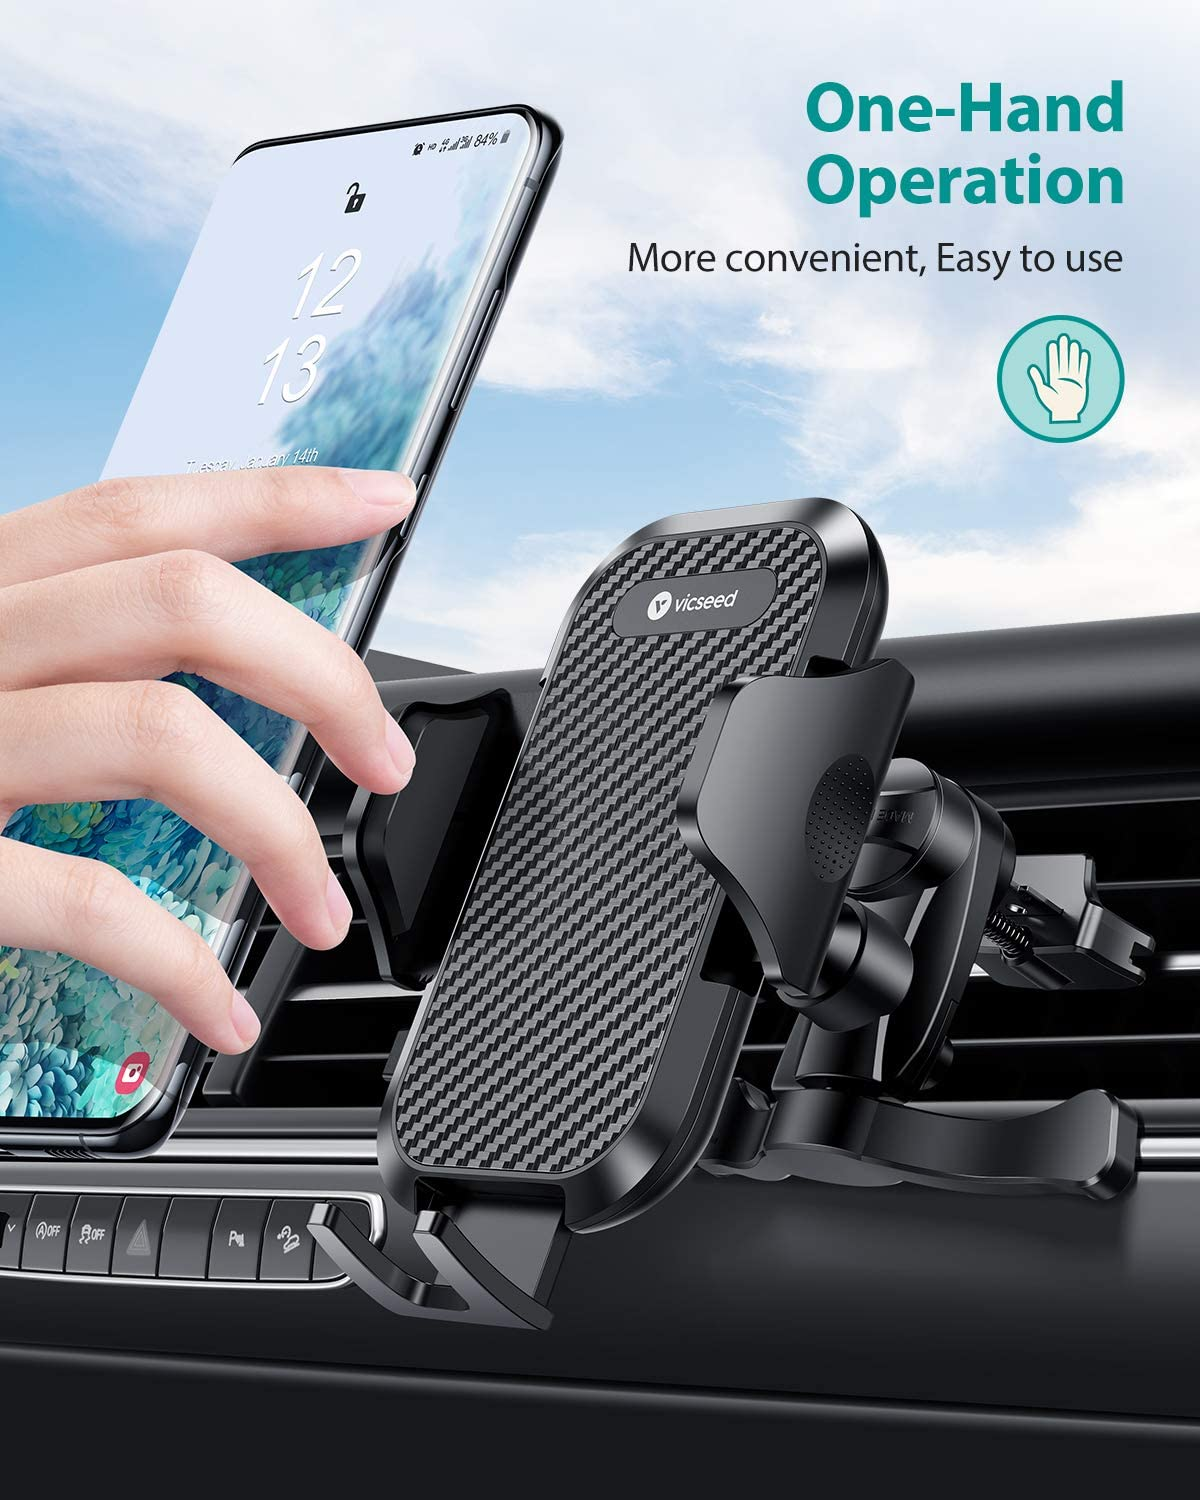 All Phones VICSEED 2020 Upgrade Ultra Stable Car Phone Mount Easy Clamp Universal Car Phone Holder Air Vent Cell Phone Holder for Car Fits for iPhone SE 11 Pro X XS Max XR Galaxy S20 S20 Note 10 10